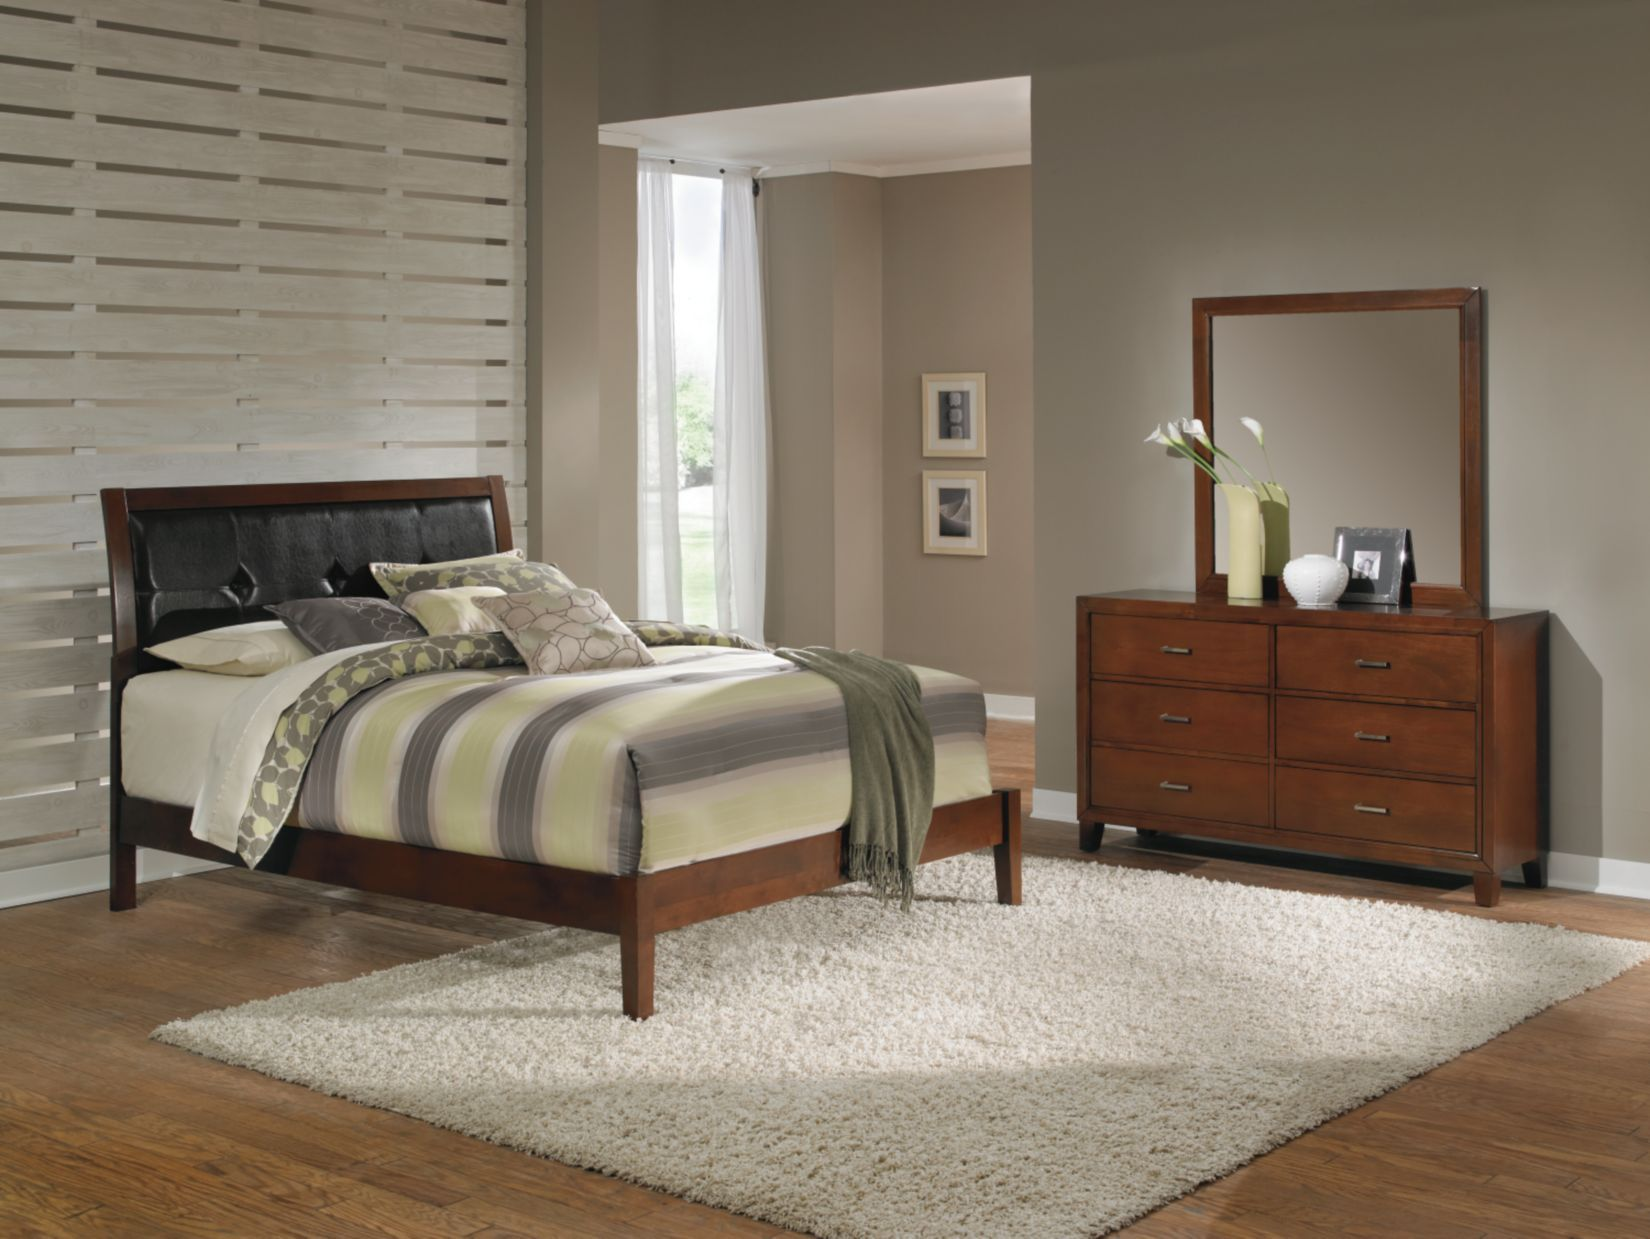 Melrose Bedroom Package Value City Furniture Mine Will Come With A Chest And Two Night Stand Furniture Bedroom Furniture Sets